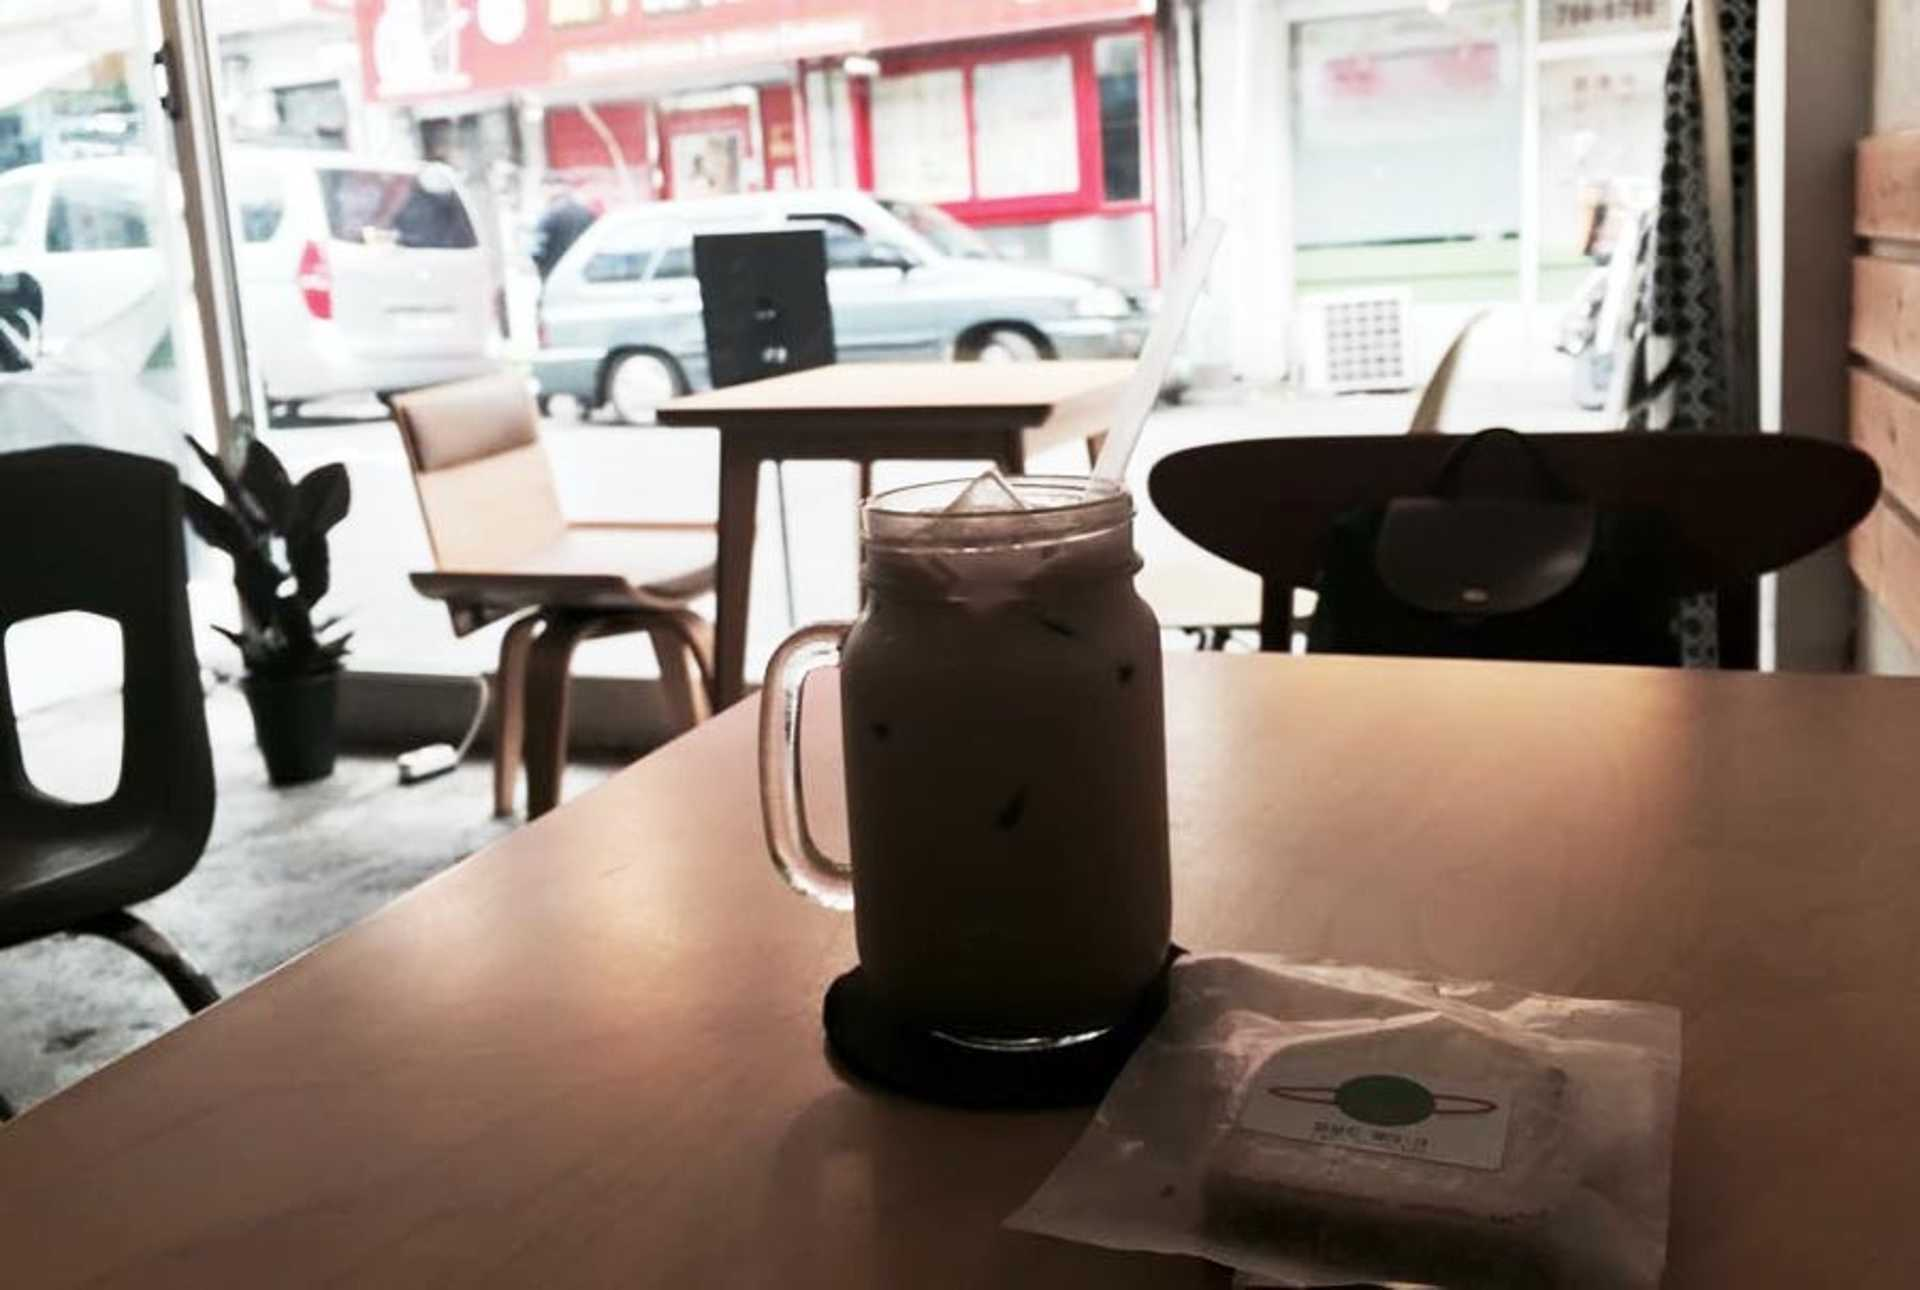 entrophy-coffee-cafe-itaewon-seoul-eid-guesthouse